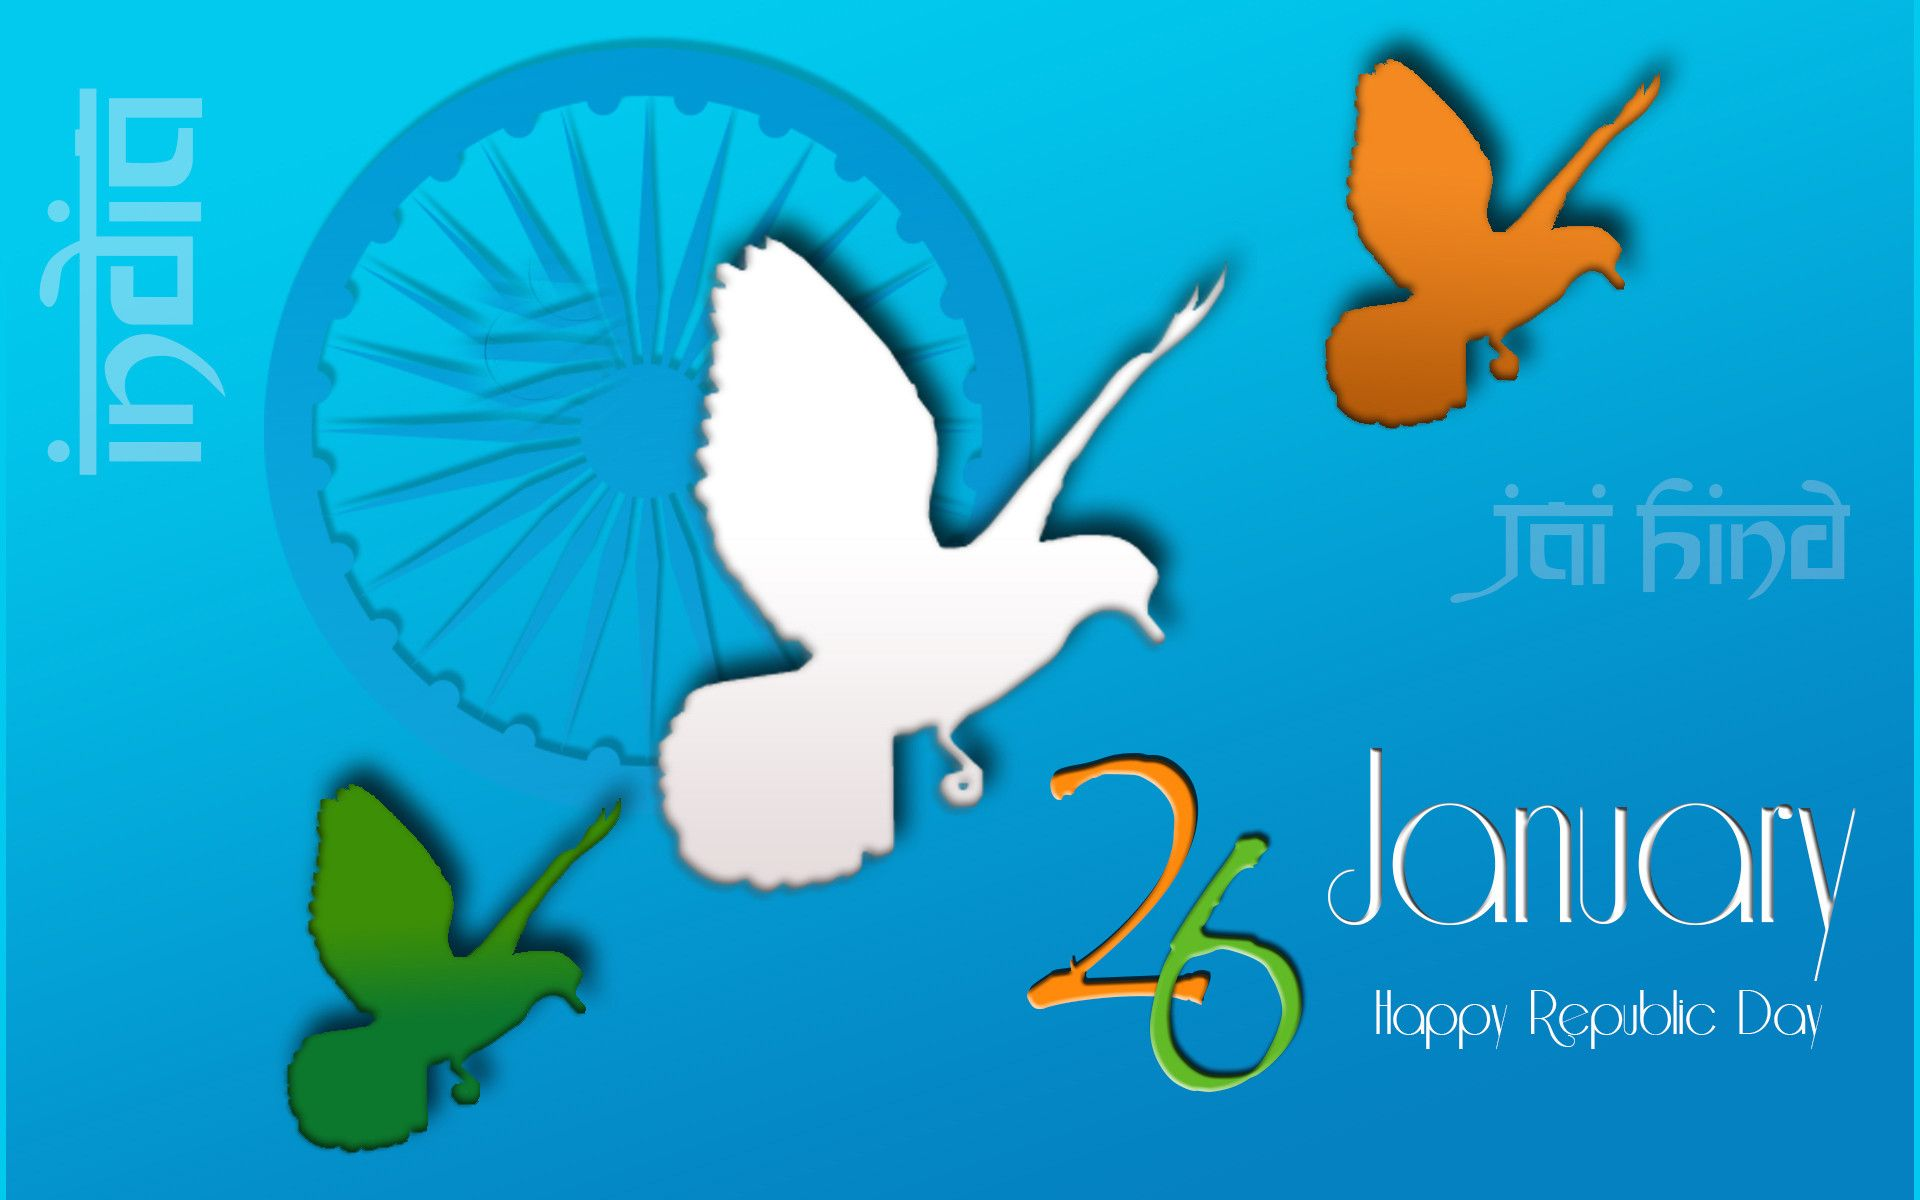 1920x1200 2017 Best Republic Day 26th January Hd Wallpapers Free Download 26 January Wallpaper Indian Flag January Wallpaper